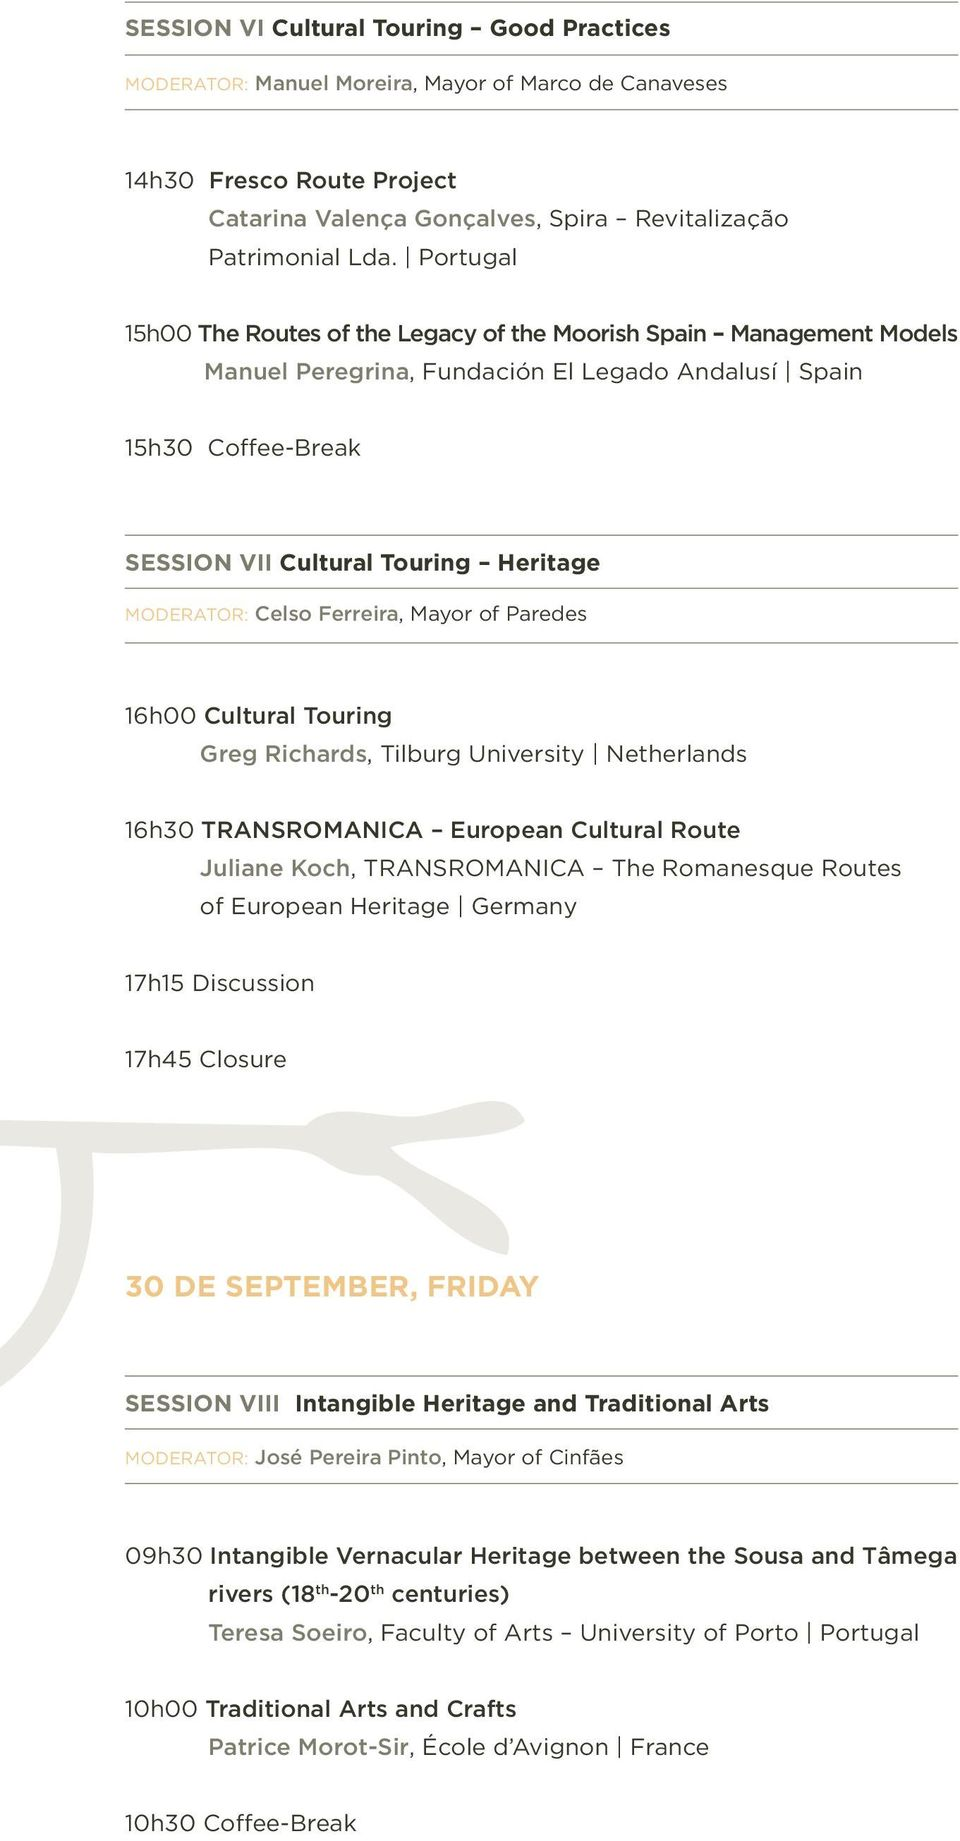 Celso Ferreira, Mayor of Paredes 16h00 Cultural Touring Greg Richards, Tilburg University Netherlands 16h30 TRANSROMANICA European Cultural Route Juliane Koch, TRANSROMANICA The Romanesque Routes of